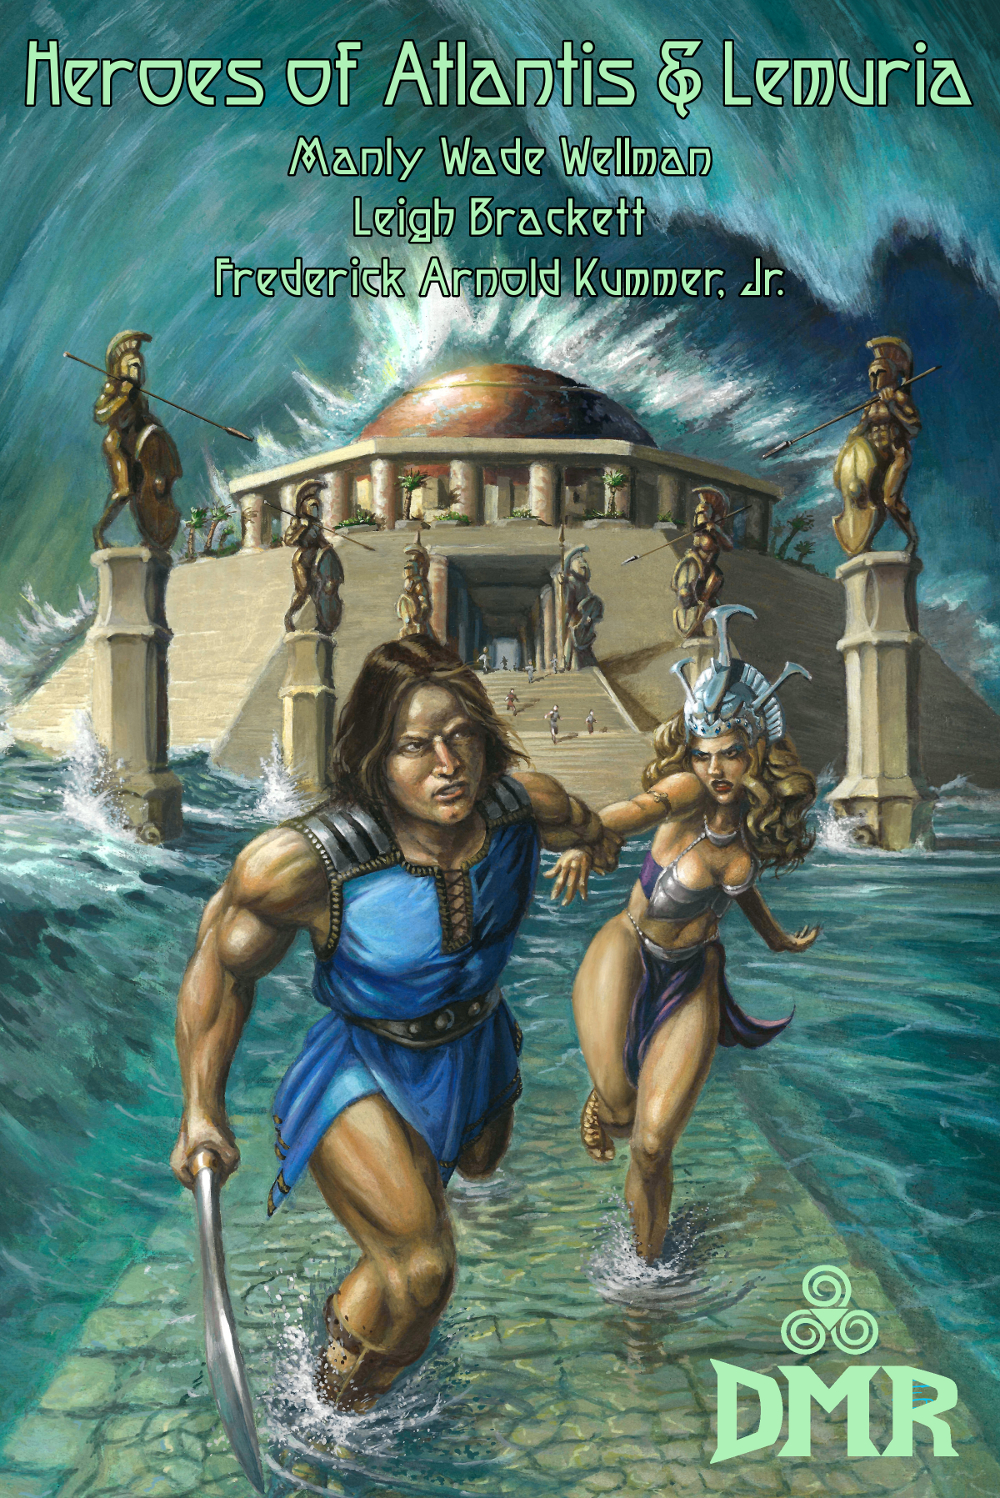 """Heroes of Atlantis & Lemuria - """"I looked in their evil eyes and they crouched like cravens,I showed them my sword, and they trembled and louted low.I gave their bones for food to the rats and ravens,And I pray the gods for another and fiercer foe.""""Of all the heroes of the legendary land of Atlantis, none were greater than Kardios, warrior and bard! In his travels he encounters creatures from the stars, self-proclaimed gods, nefarious wizards, and untrustworthy lascivious queens. For years fans of sword-and-sorcery fiction have demanded a collection containing all of Manly Wade Wellman's tales of Kardios. Their demands had not been met—until now! In addition, this book contains all of Frederick Arnold Kummer, Jr.'s Lemurian adventure stories (also never collected before) and a hard-to-find Leigh Brackett story set in Mu. Join the heroes of Atlantis and Lemuria on their fantastic adventures!""""Here was danger, here was strife,Here was conquest, too;Yonder lies the road of life,More to see and do.""""Trade Paperback: 9"""" x 6"""", 232 pages, $14.99Digital: $2.99"""